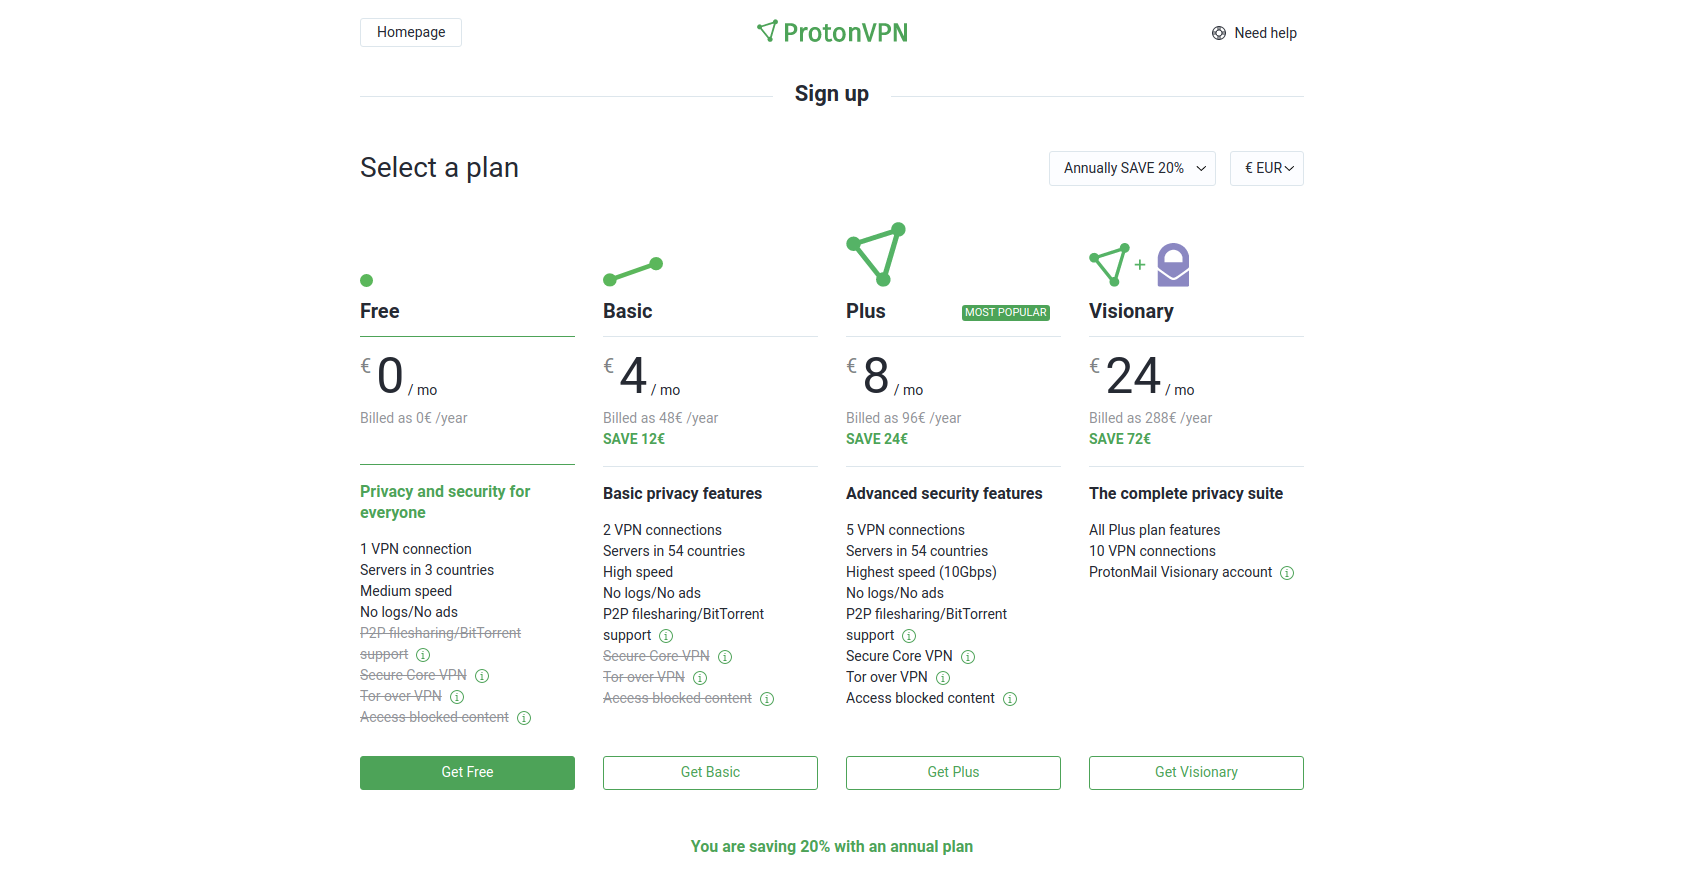 Screenshot of the ProtonVPN sign up page.